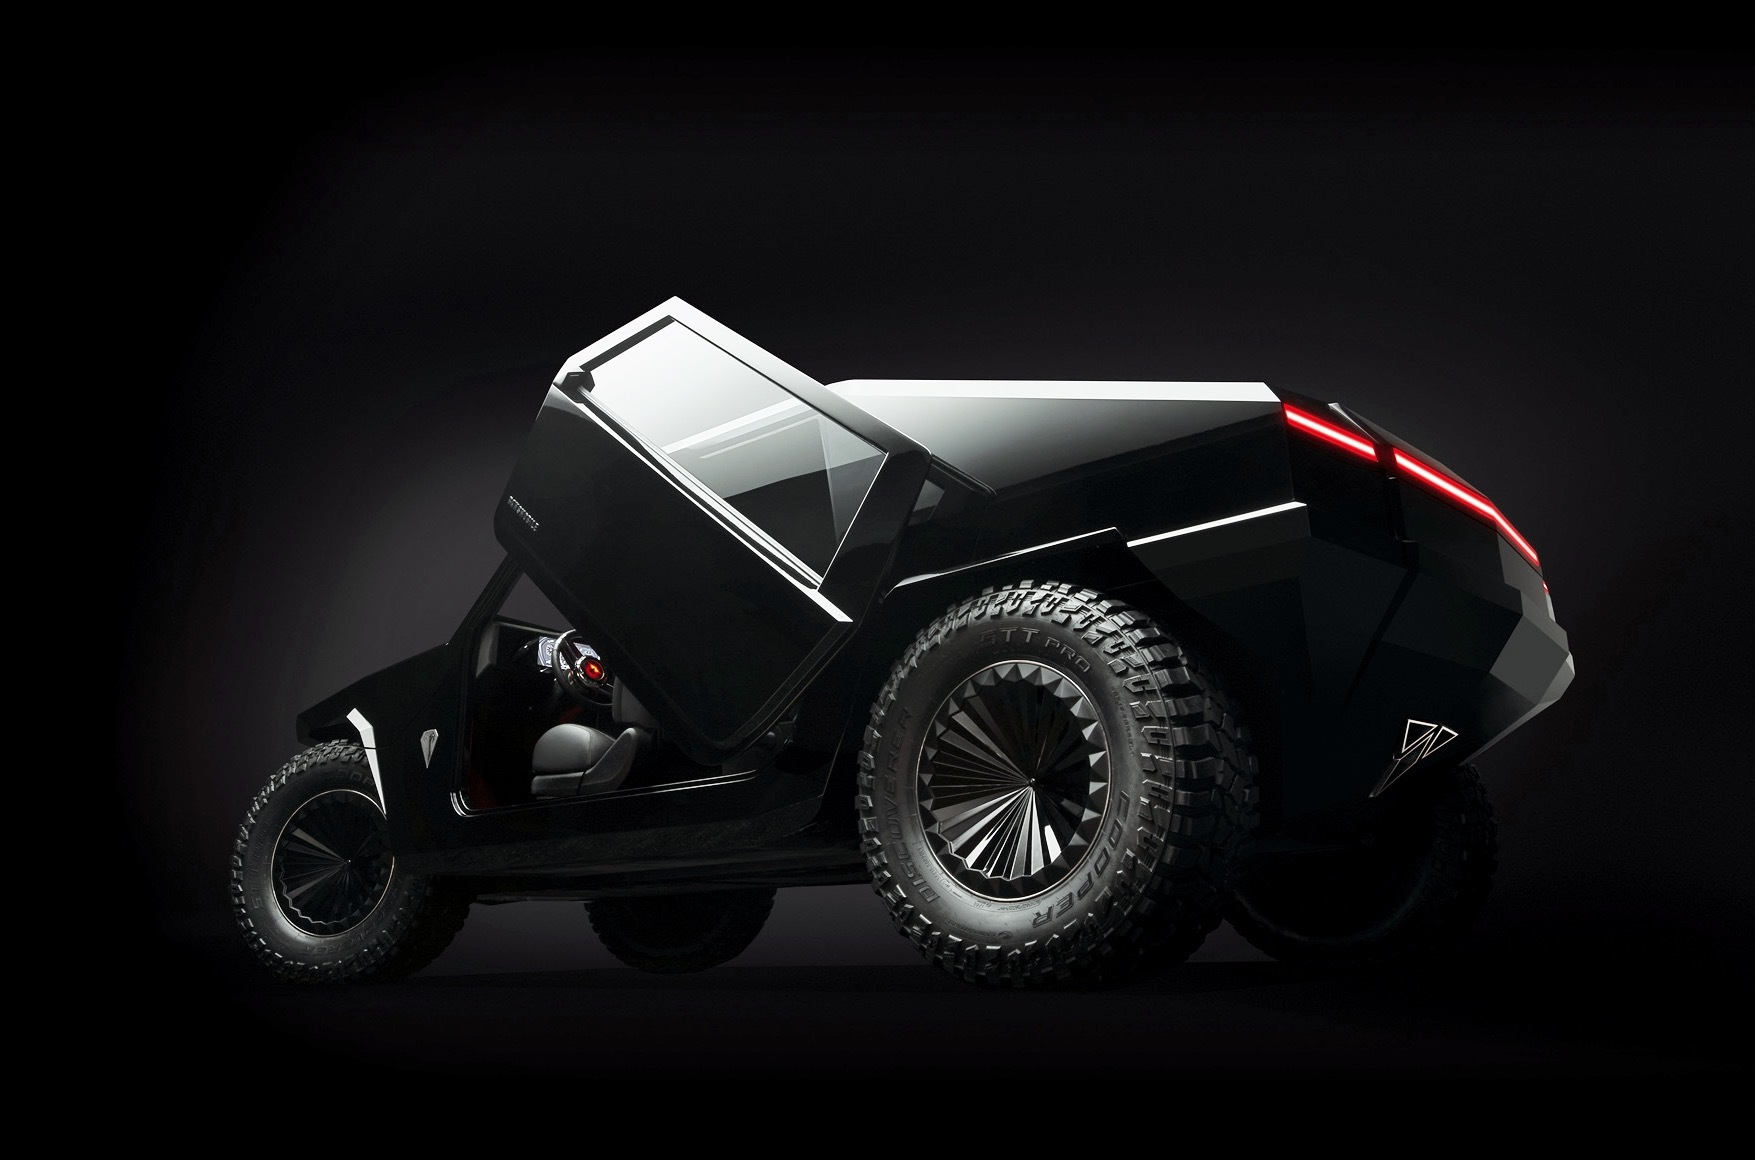 North American carmaker Ramsmobile has come to the Frankfurt Motor Show 2019 with the Protos RM-X2, an extreme off-road vehicle boasting between 400 and 700 mm (15.6 – 27.3 inches) of ground clearance and a single tank-like track assembly instead of wheels.